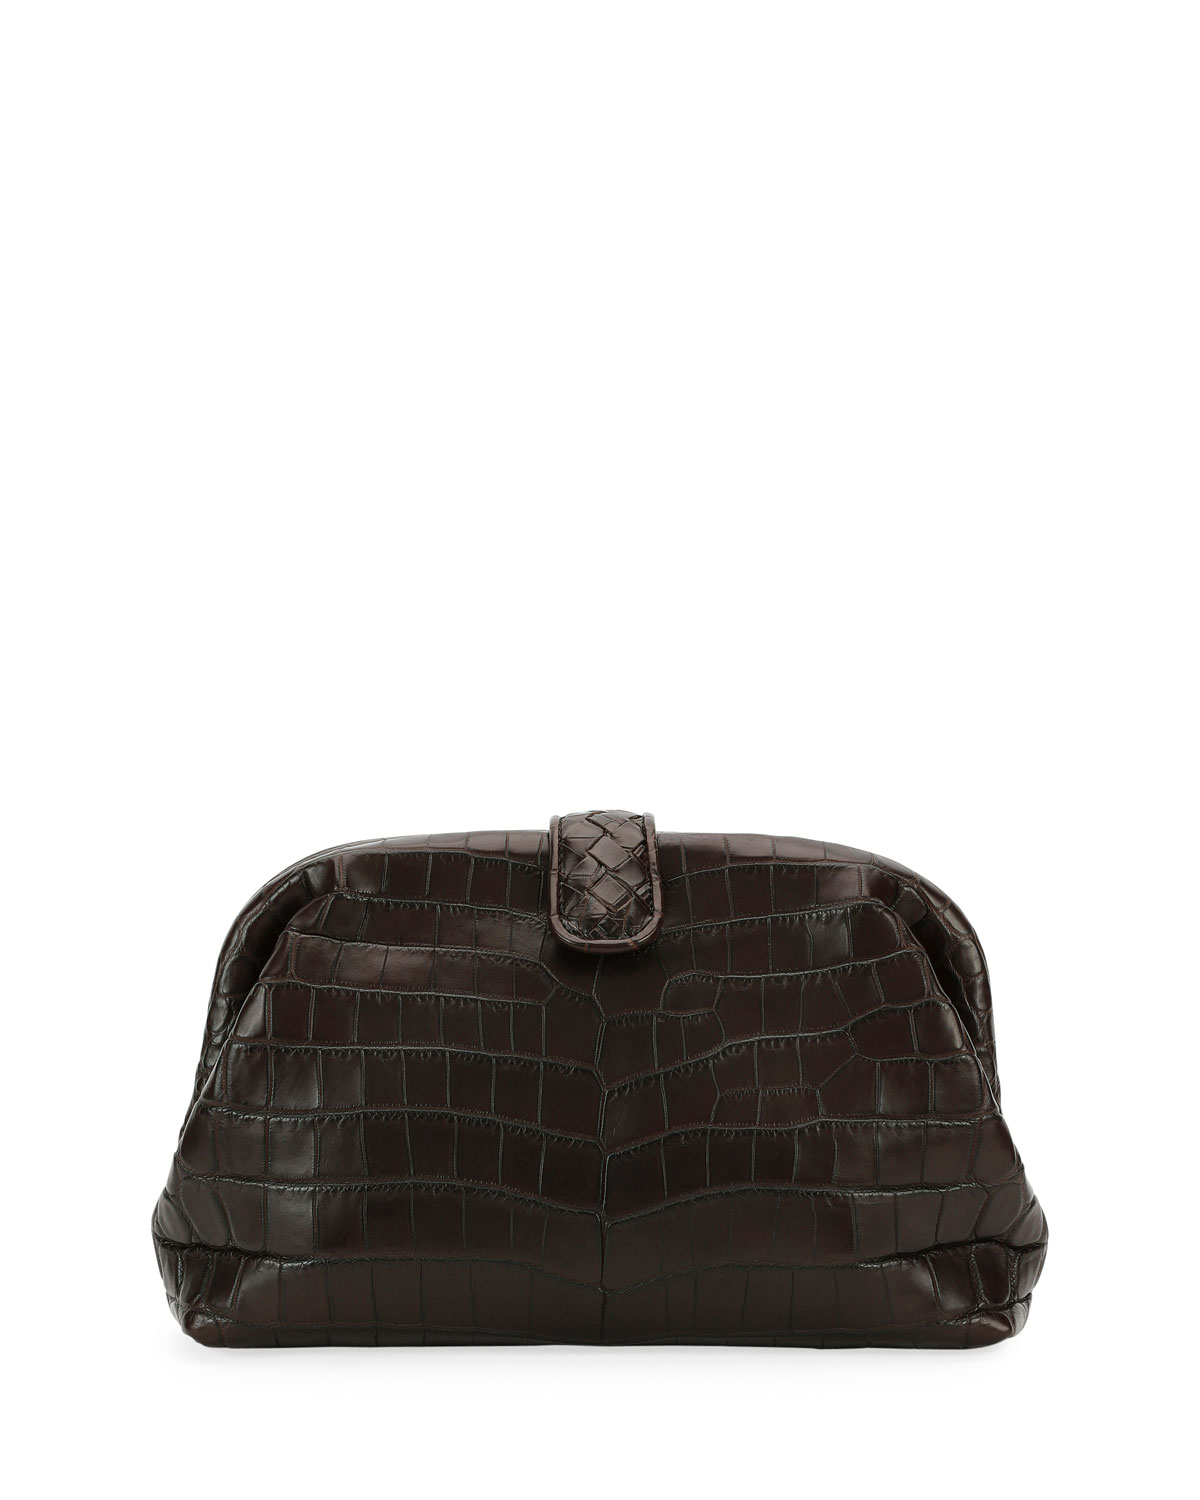 2daaf4aad3 Bottega Veneta The Lauren 1980 Soft Croc Clutch Bag